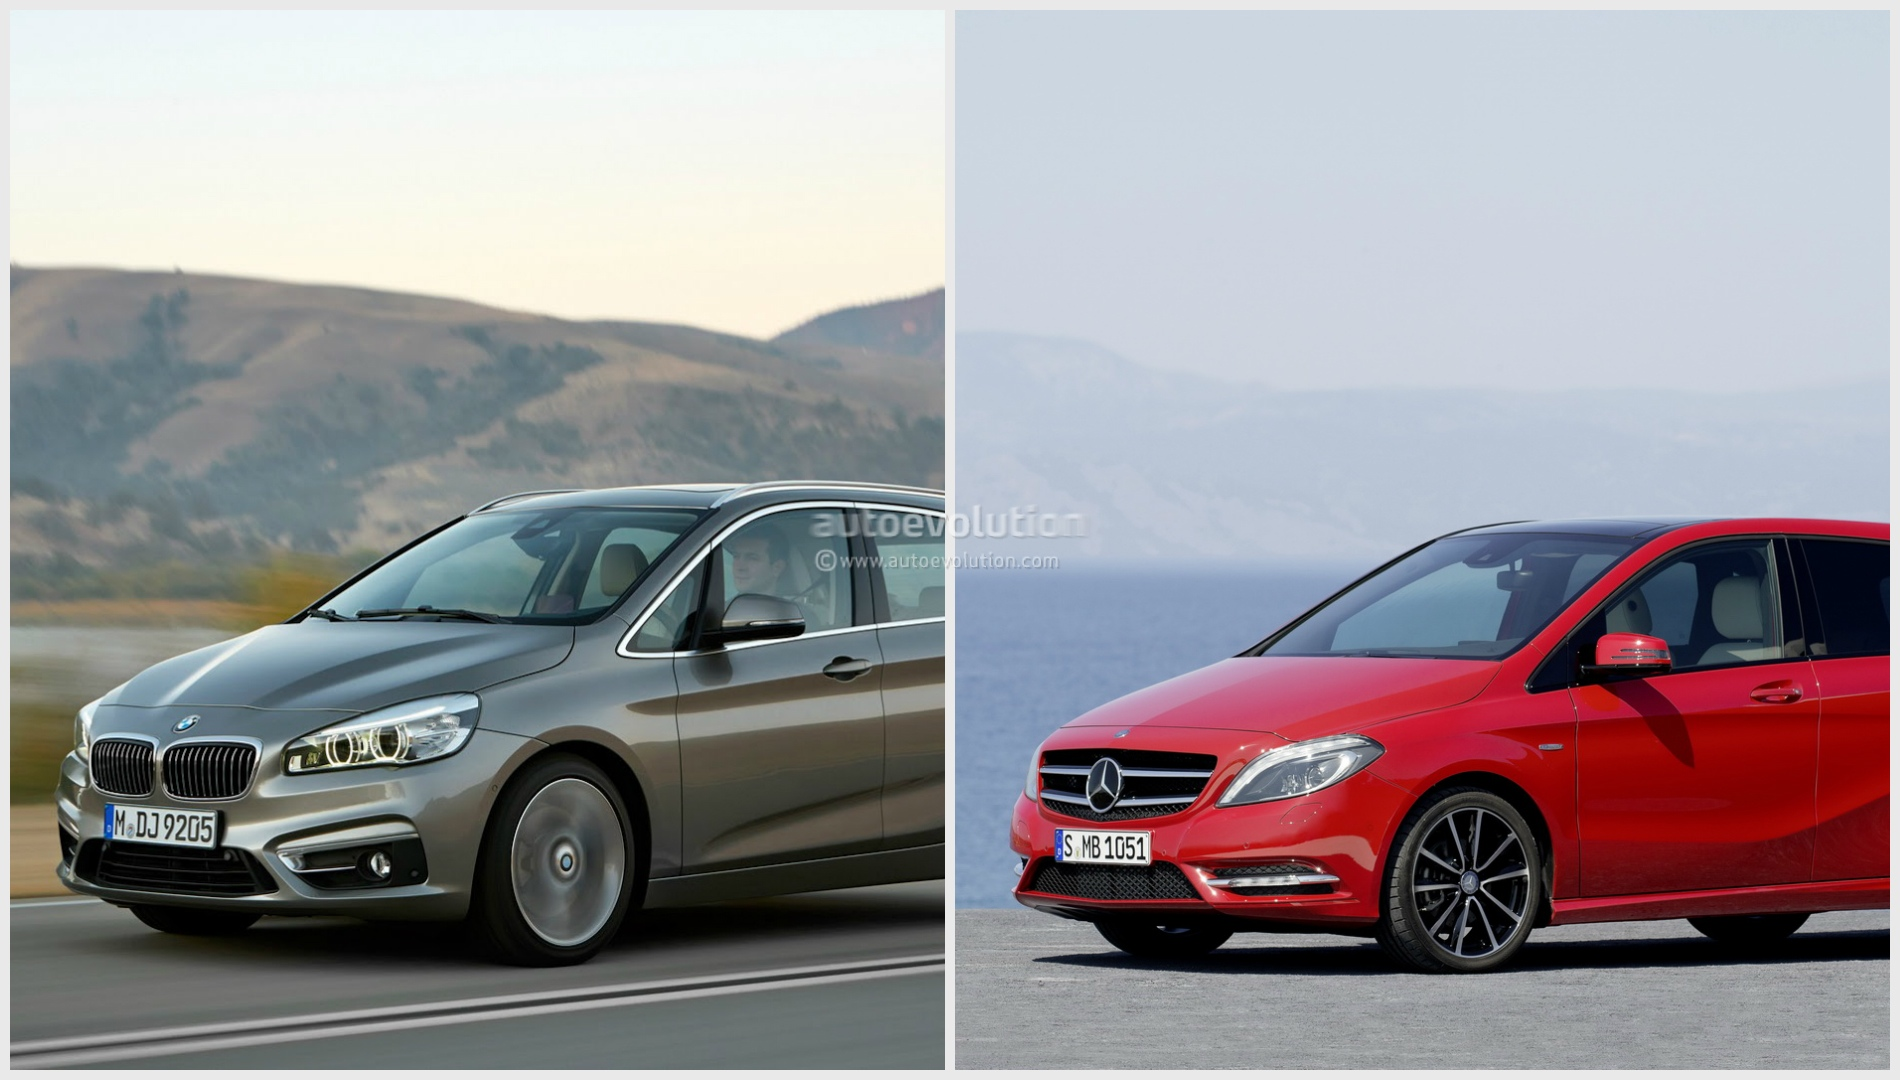 bmw 2 series vs mercedes benz b class photo comparison autoevolution. Black Bedroom Furniture Sets. Home Design Ideas